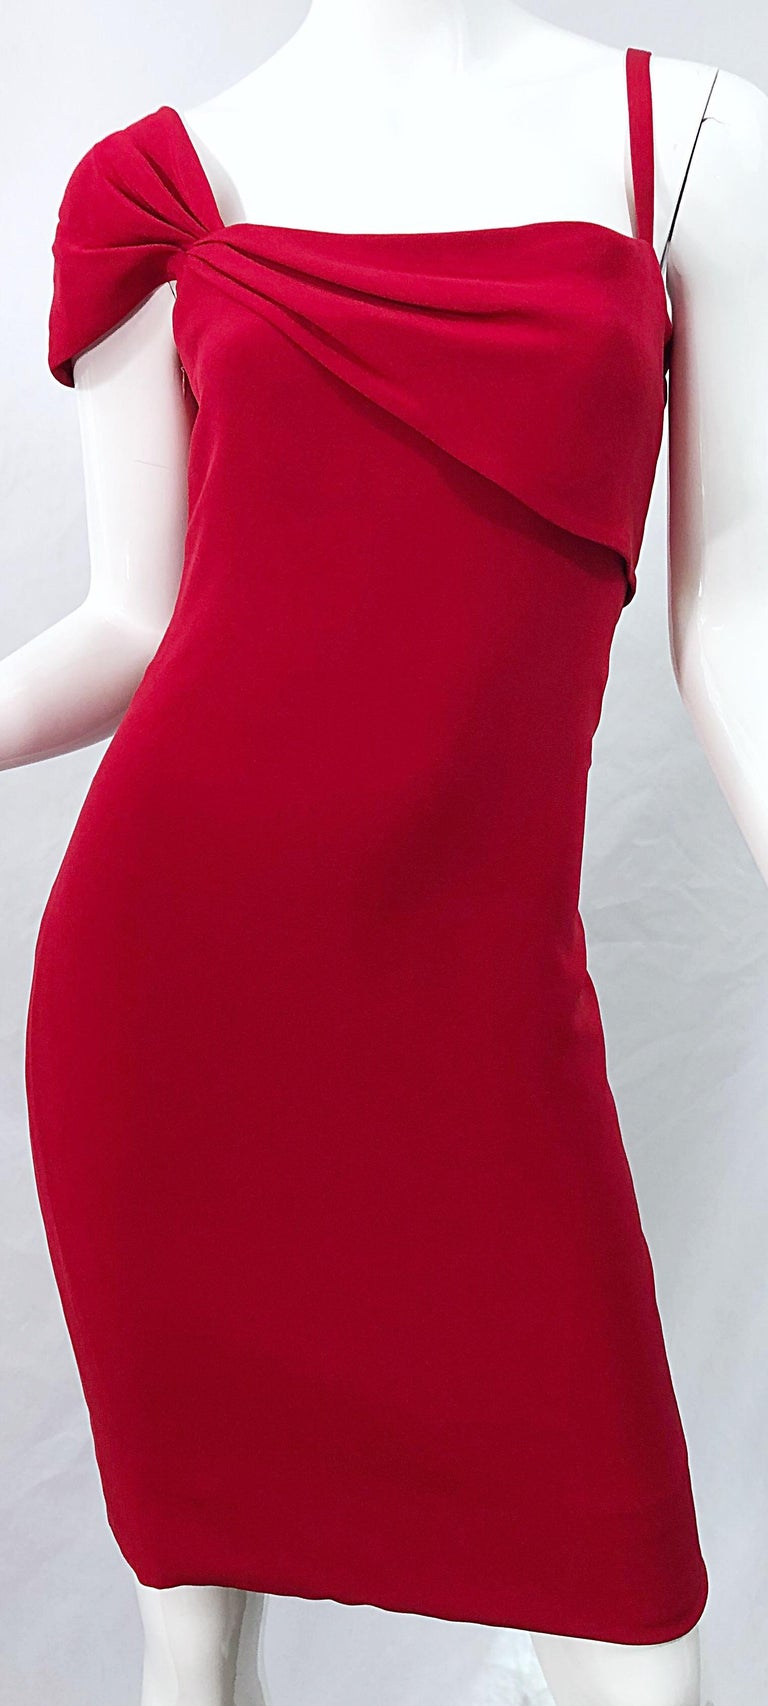 Vintage Bill Blass 1990s Size 6 Lipstick Red One Shoulder 90s Silk Dress For Sale 3